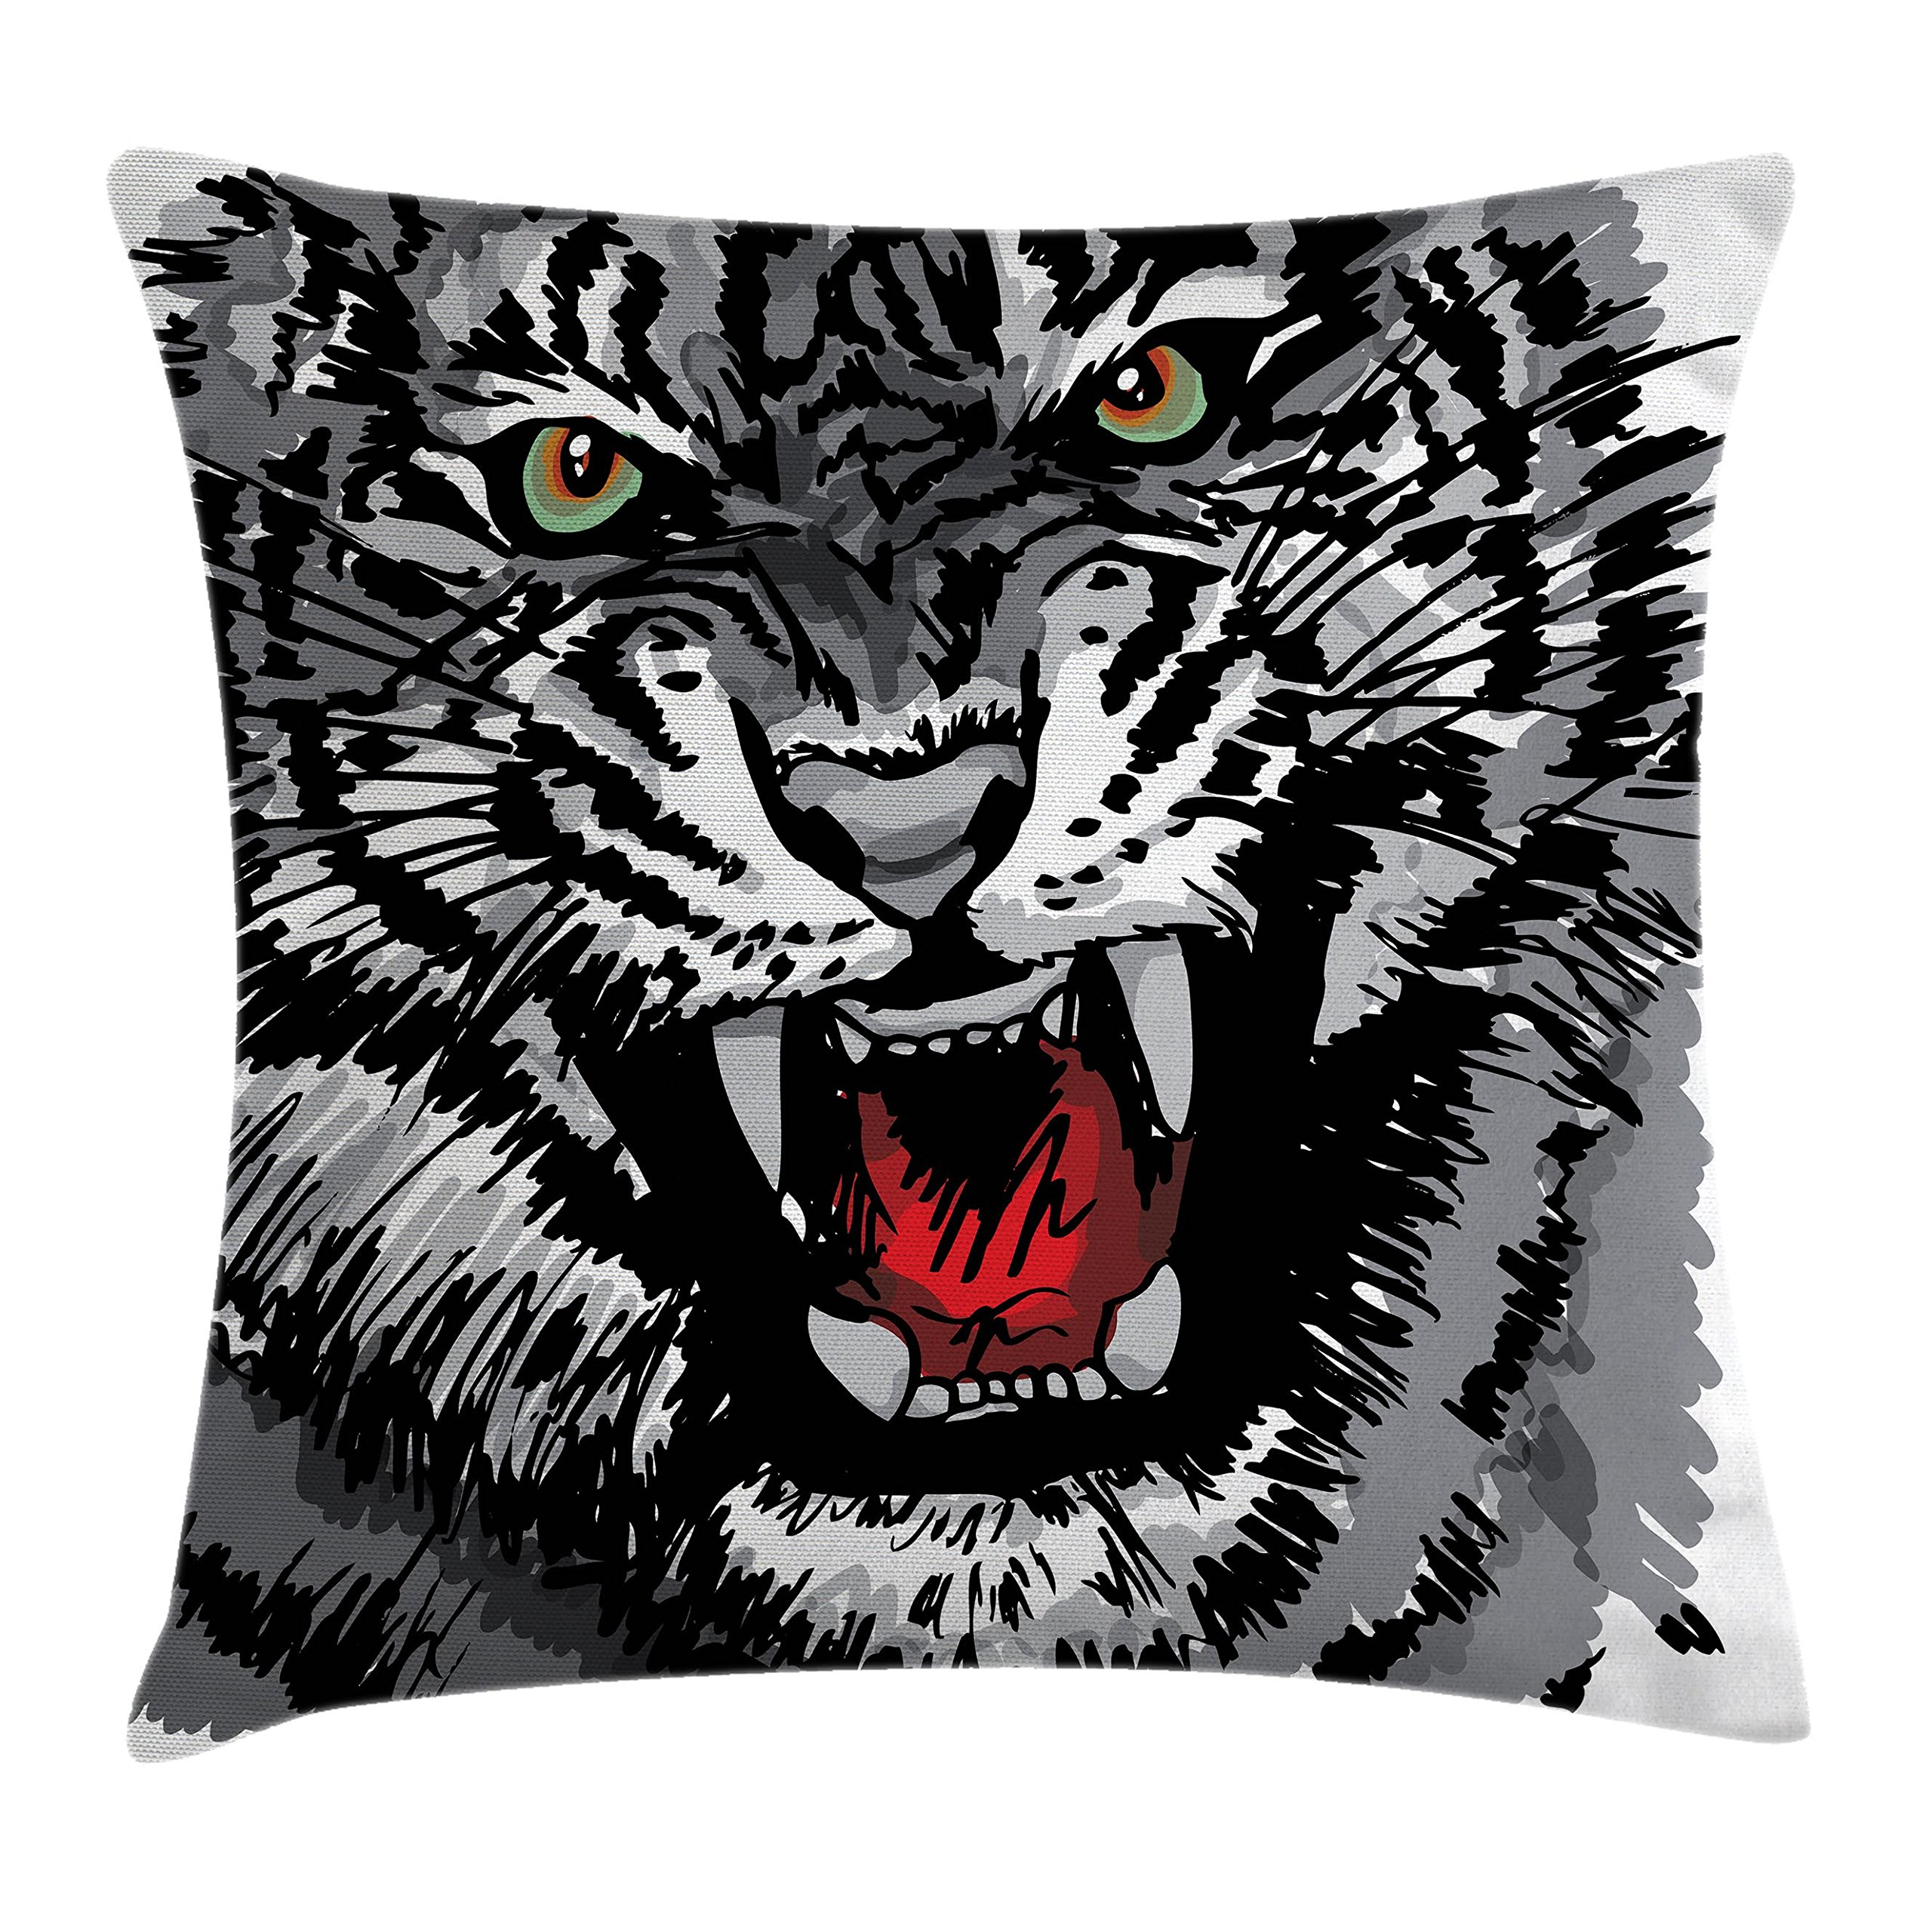 Ambesonne African Throw Pillow Cushion Cover, Image of Safari Tiger Territorial Predator Power with Unique Patterns Print, Decorative Square Accent Pillow Case, 18 X 18 inches, Grey Black White